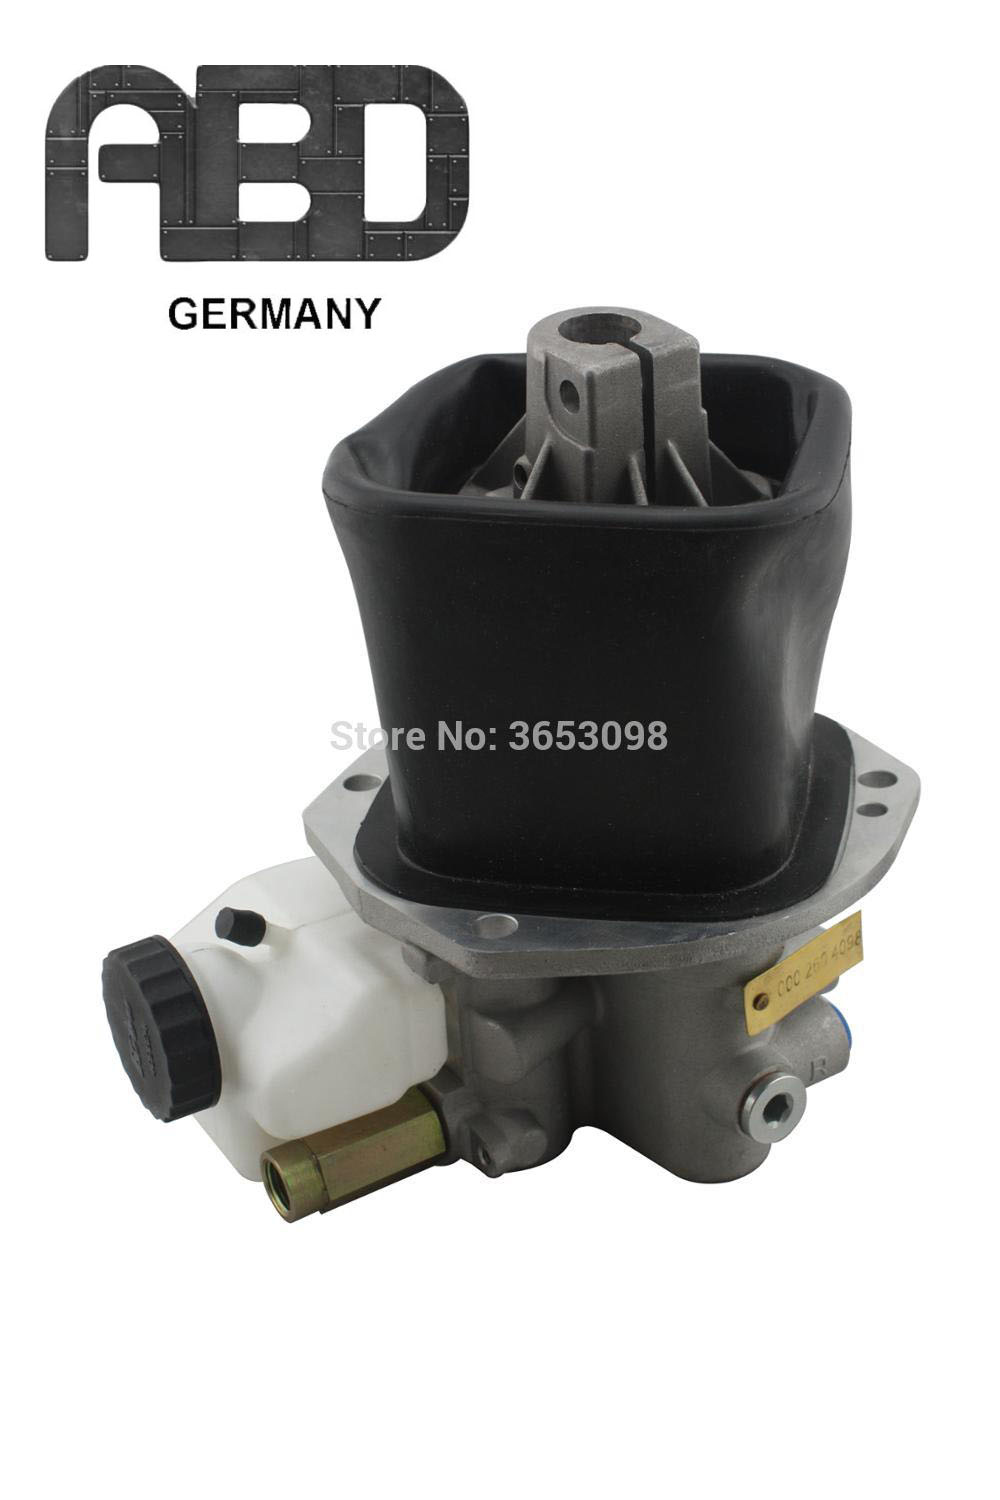 Suitable For Mercedes Truck Gear Shifting Lever / Gear Lever Actuator A0002604098 0002604098 A0002607198 0002607198 626321AM